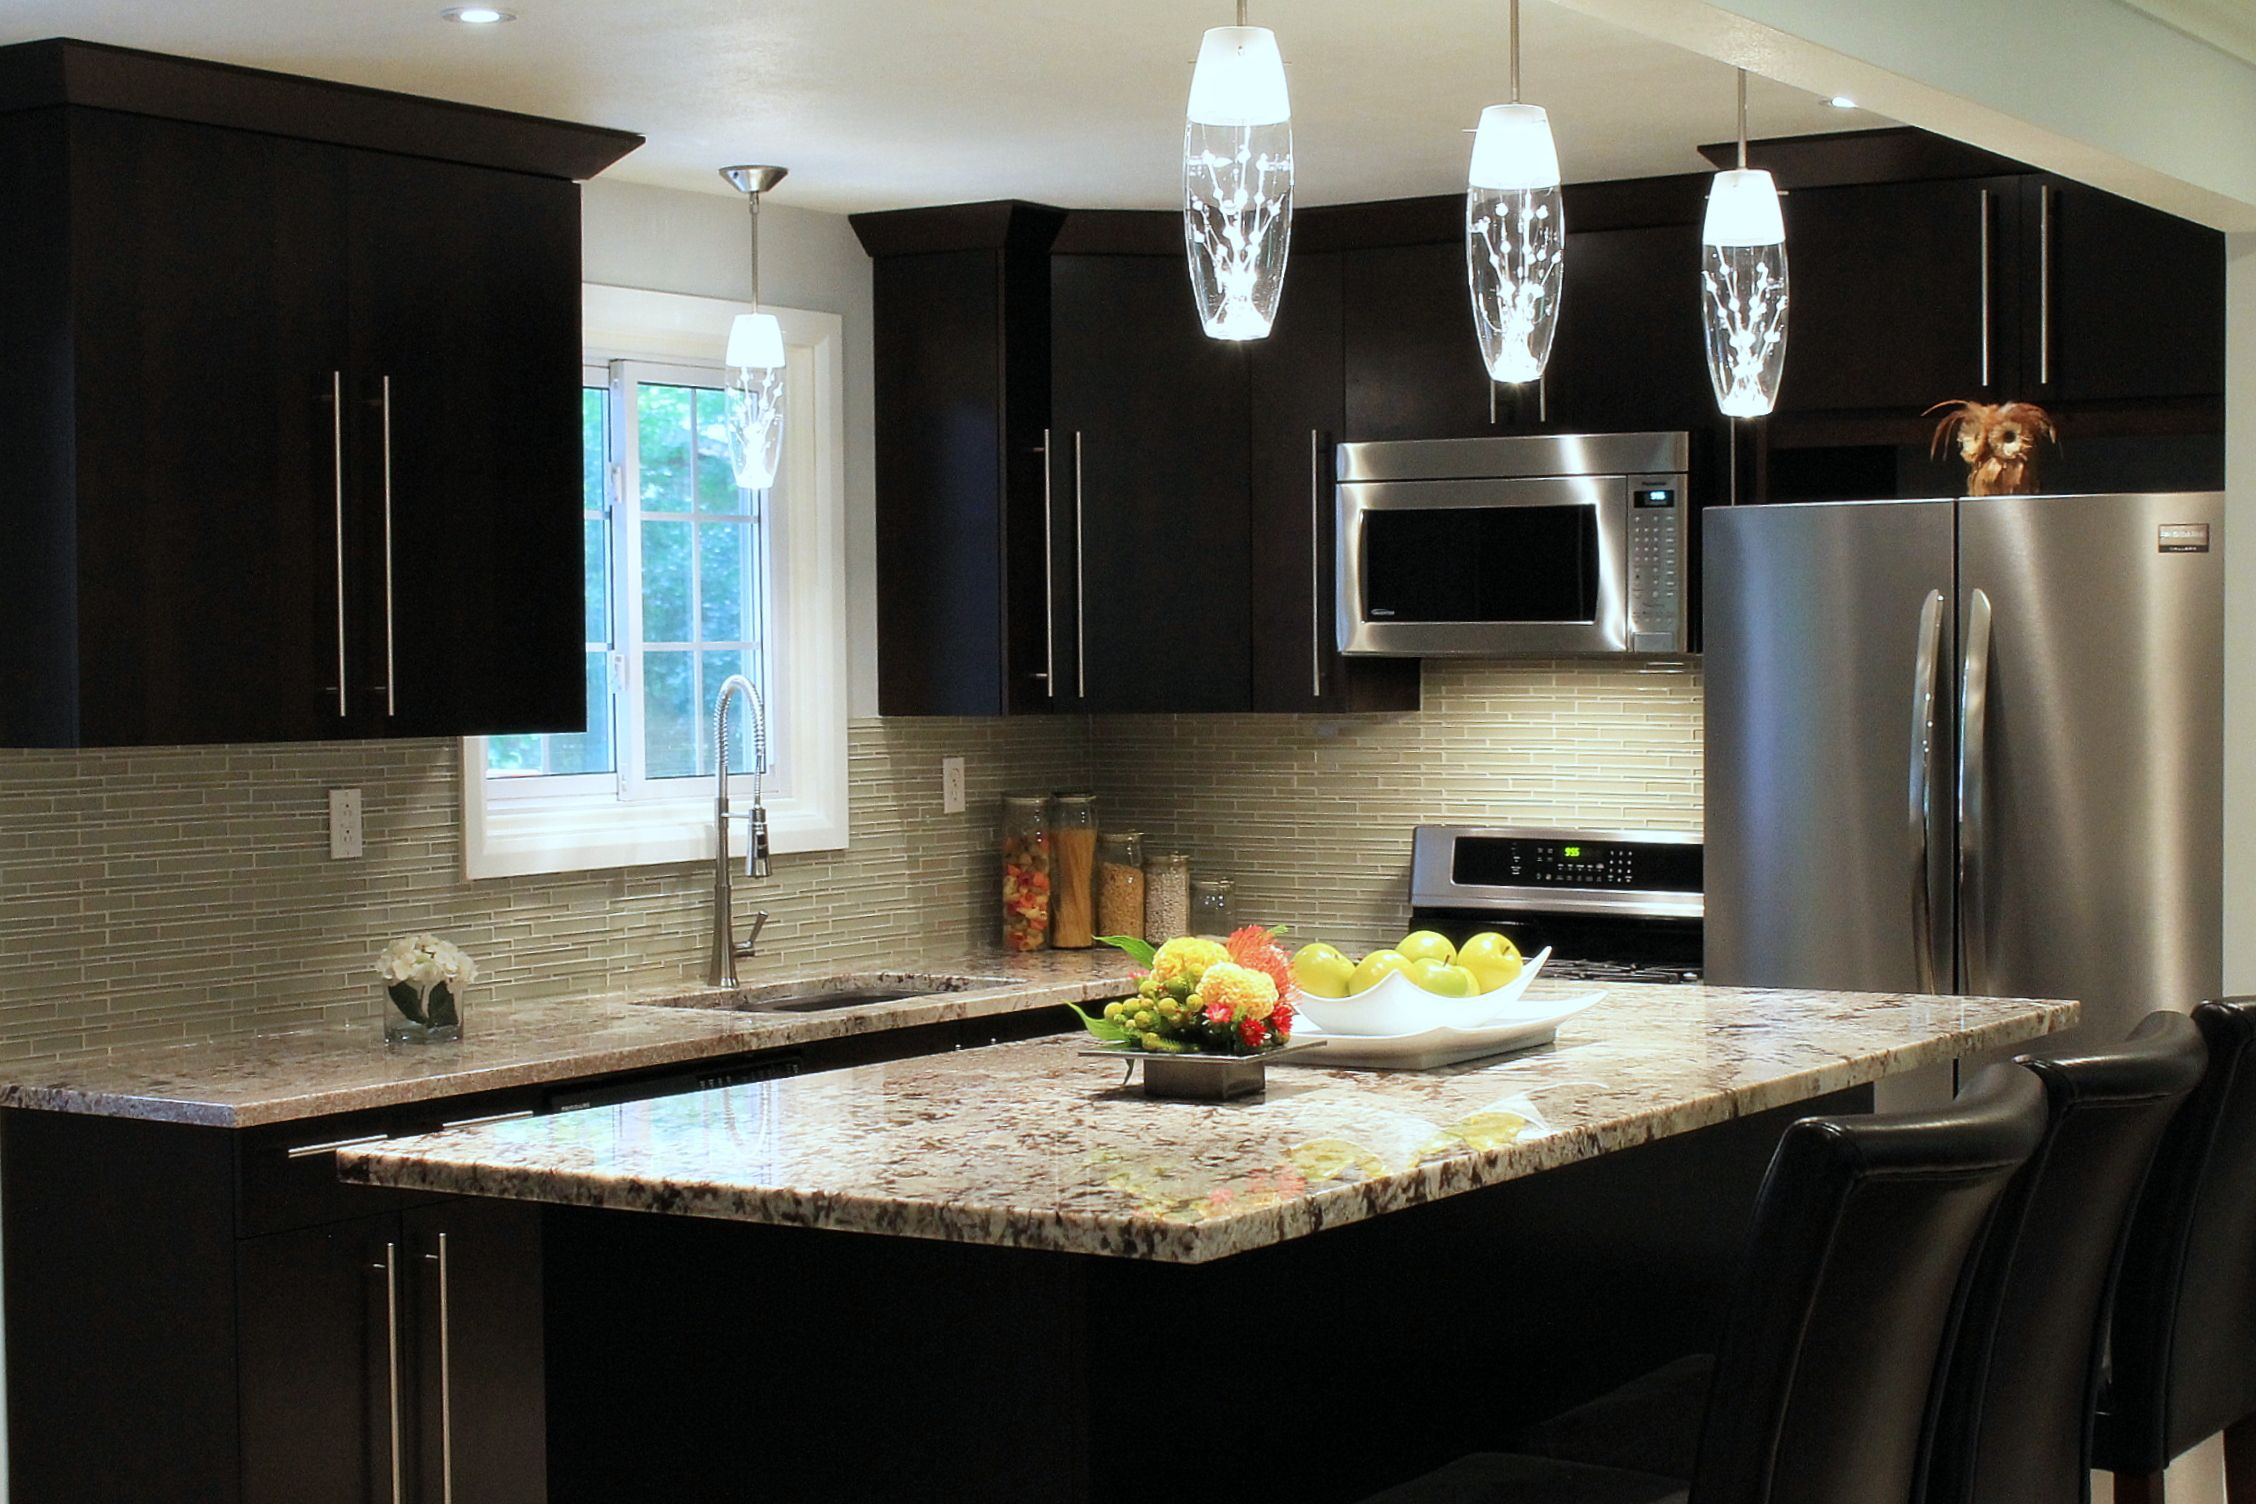 Crisp And Clean Custom Flat Slab Maple Doors In A Dark Chocolate Stain With Brushed Stainless Steel Appliance Linear Glass Tile Glass Tile Backsplash Kitchen